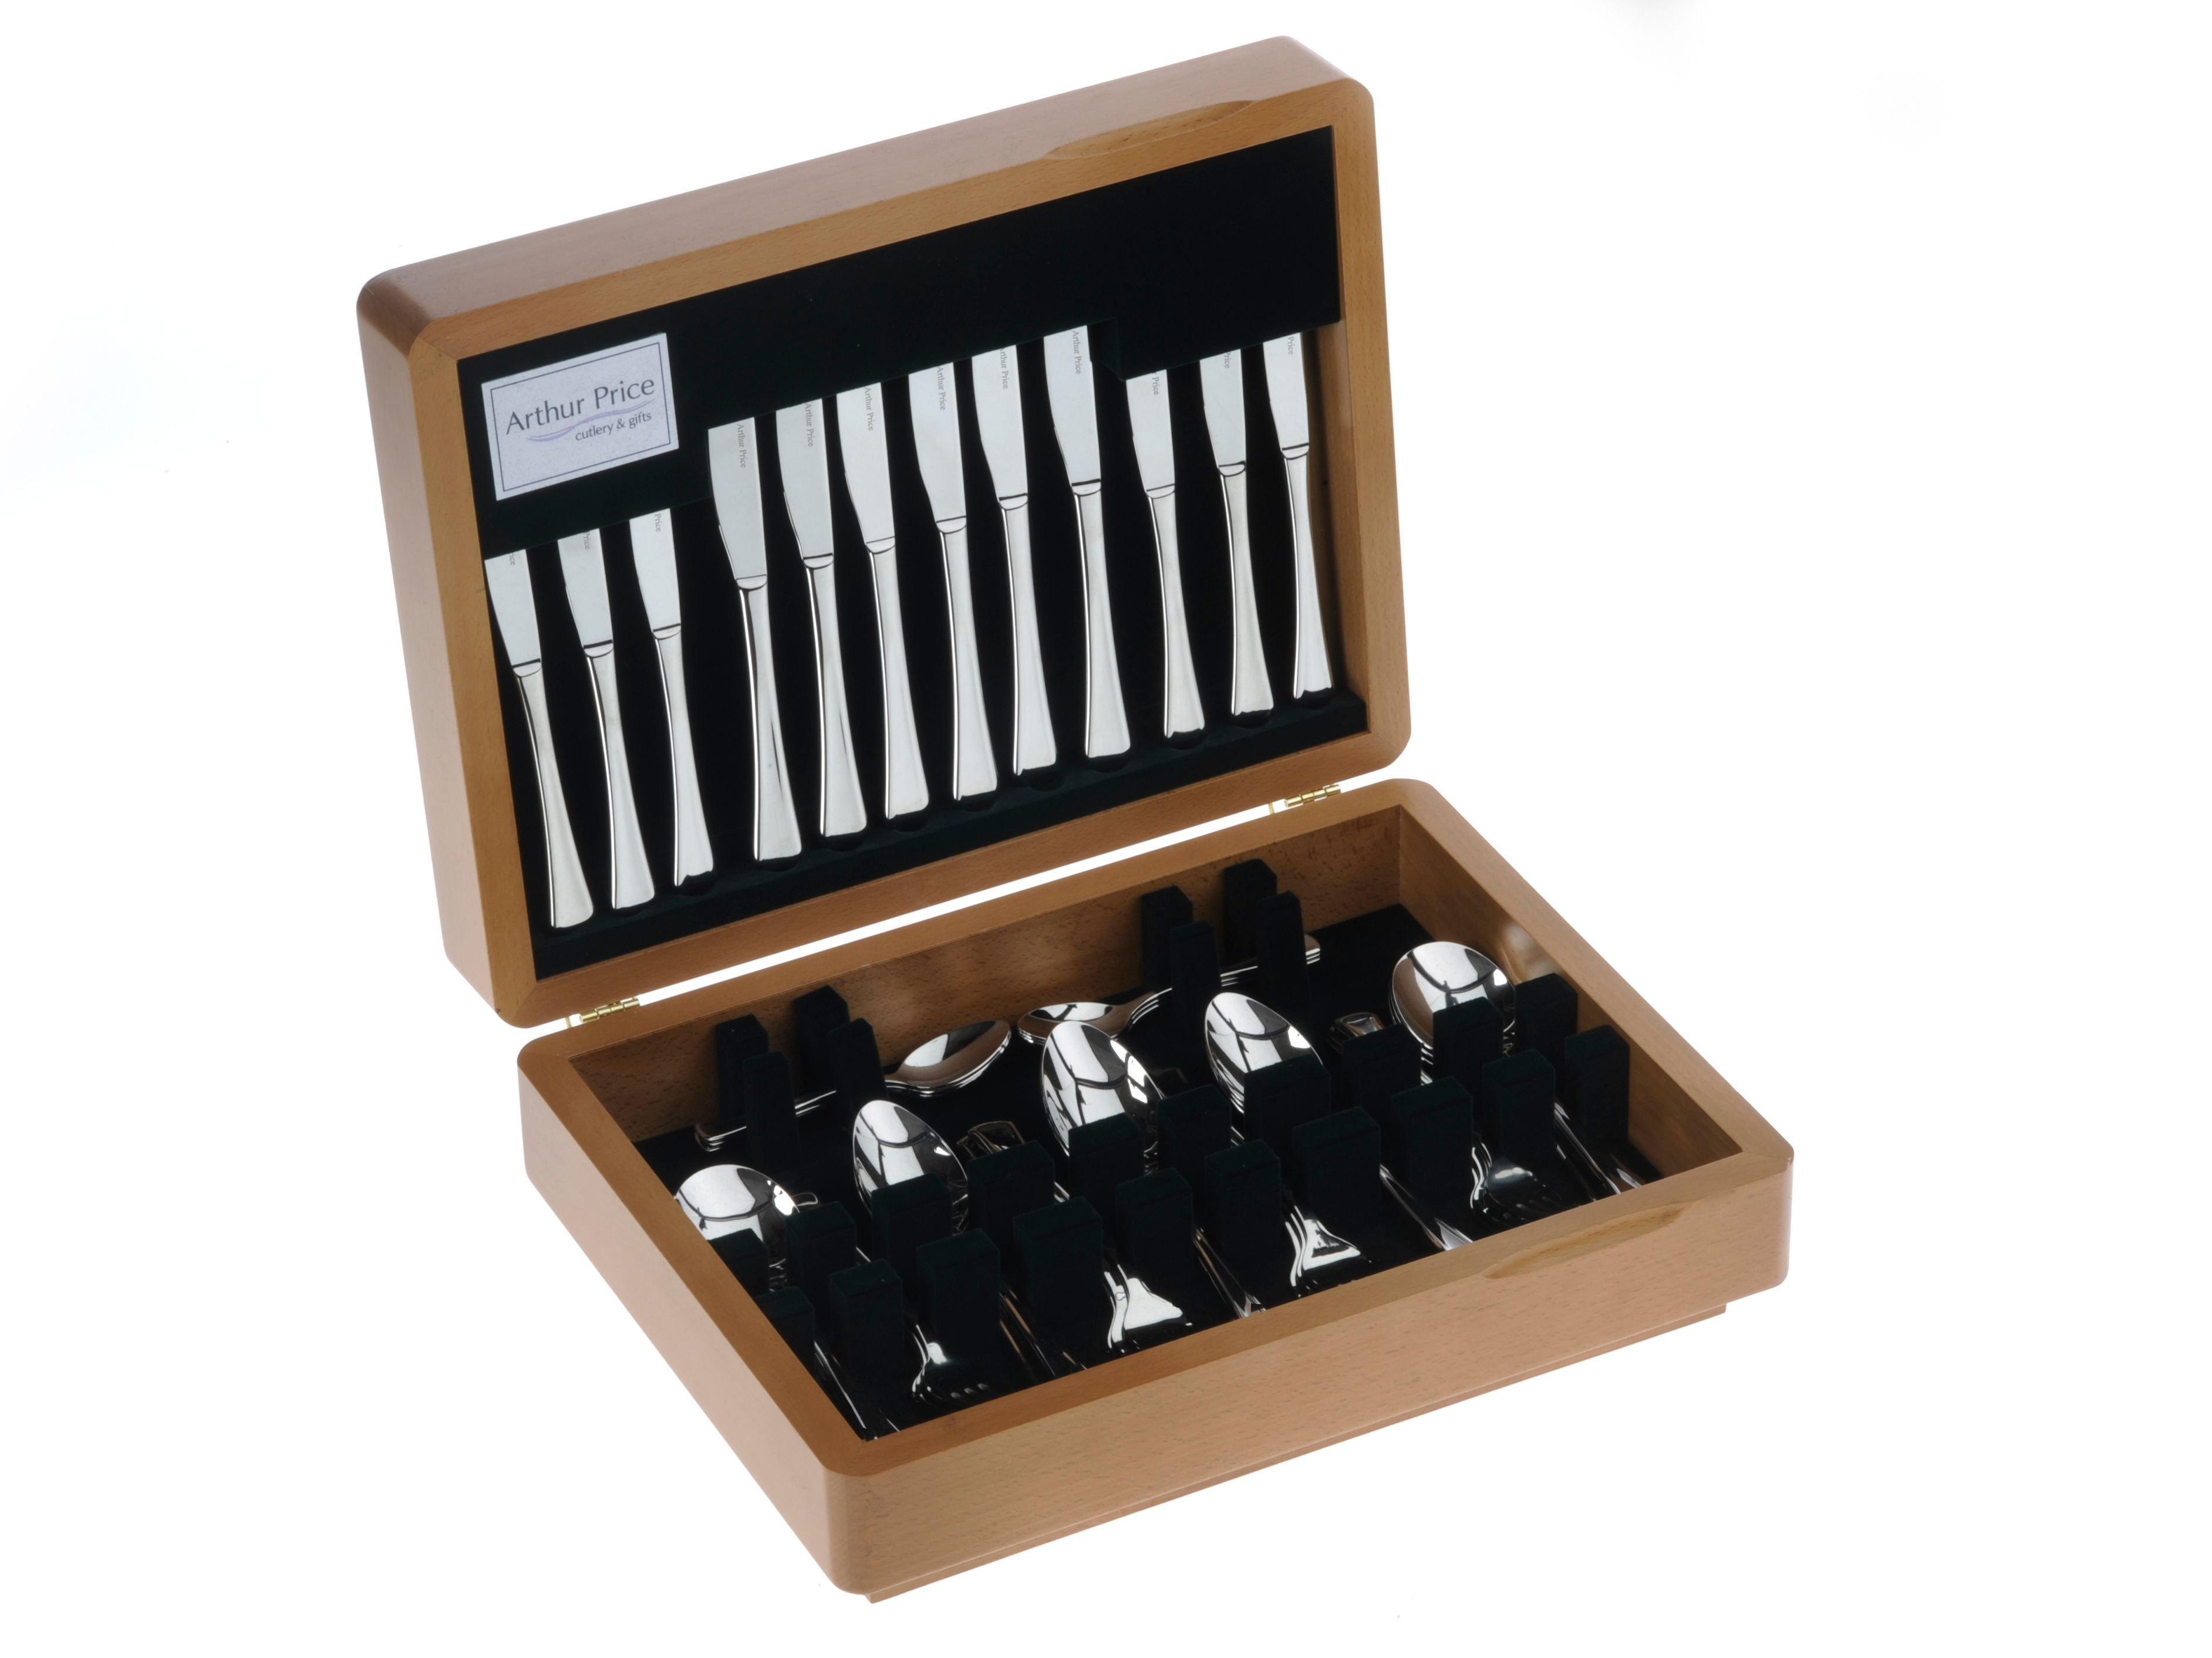 Apollo 44 pieces canteen of cutlery set